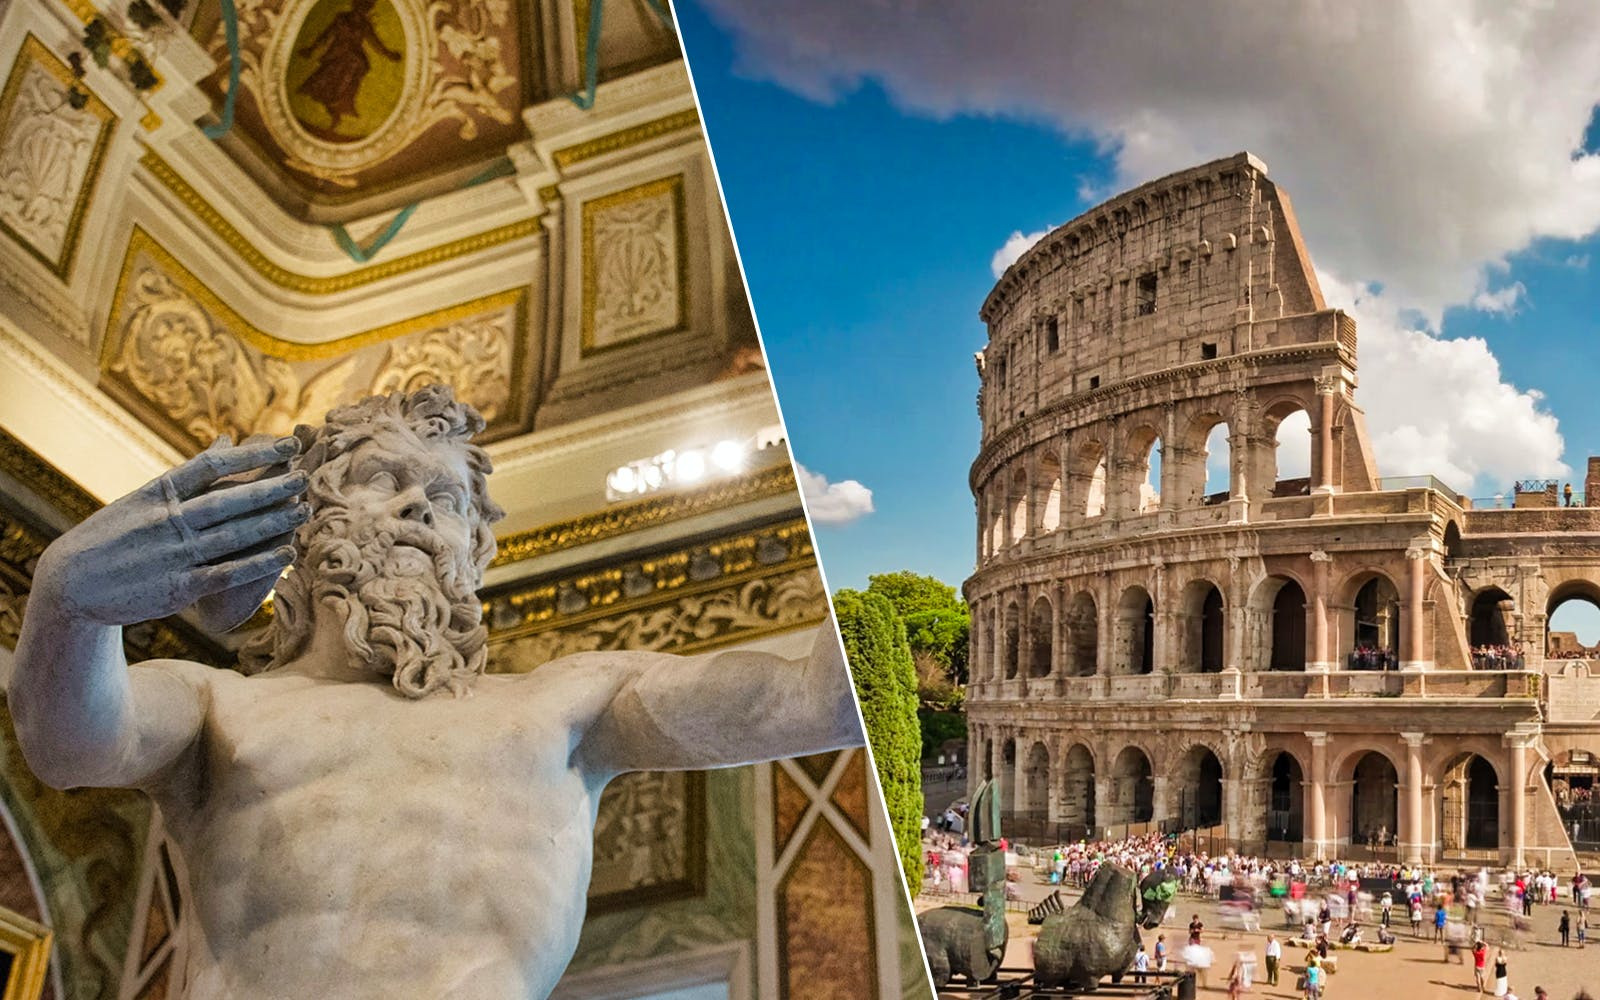 Borghese Gallery & Colosseum Half Day Guided Tour with Roman Forum